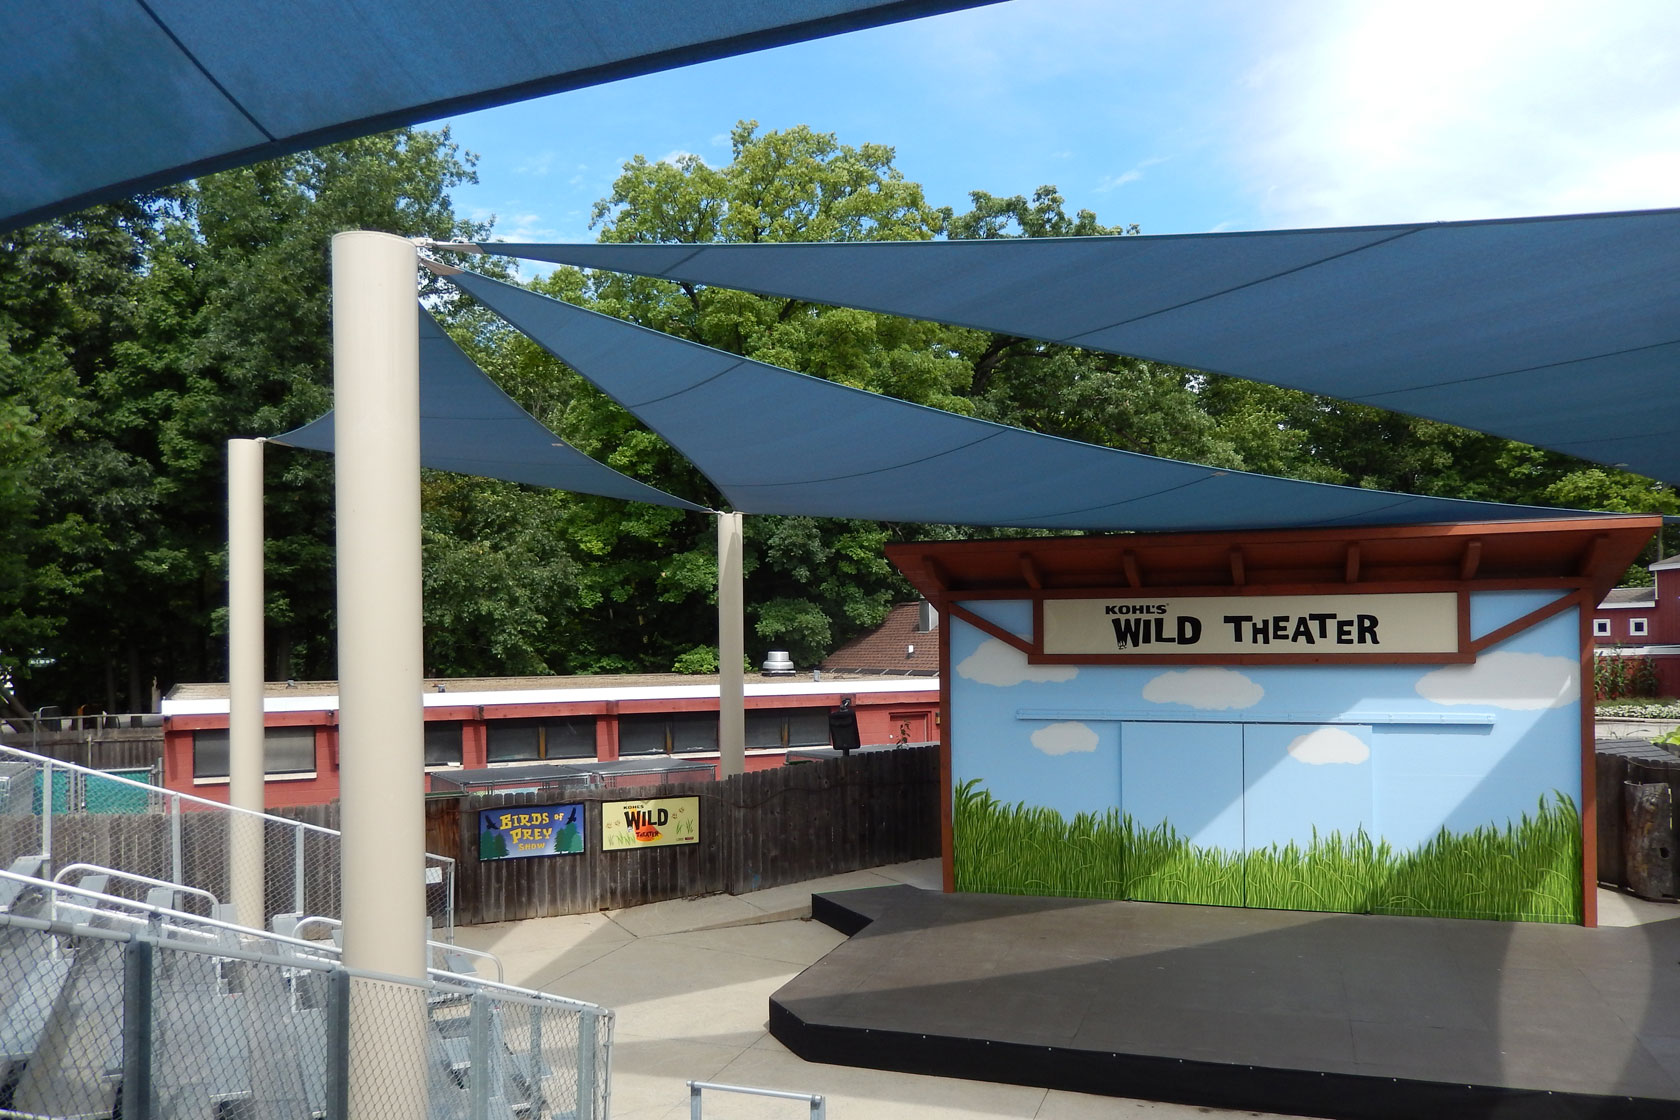 ... uncomfortable for zoo visitors potentially shortening the time spent viewing outdoor exhibits. Thanks to the protection of a new overhead canopy from ... & Milwaukee Zoo Adds Shade Canopy to Raptory Theater - Commercial ...